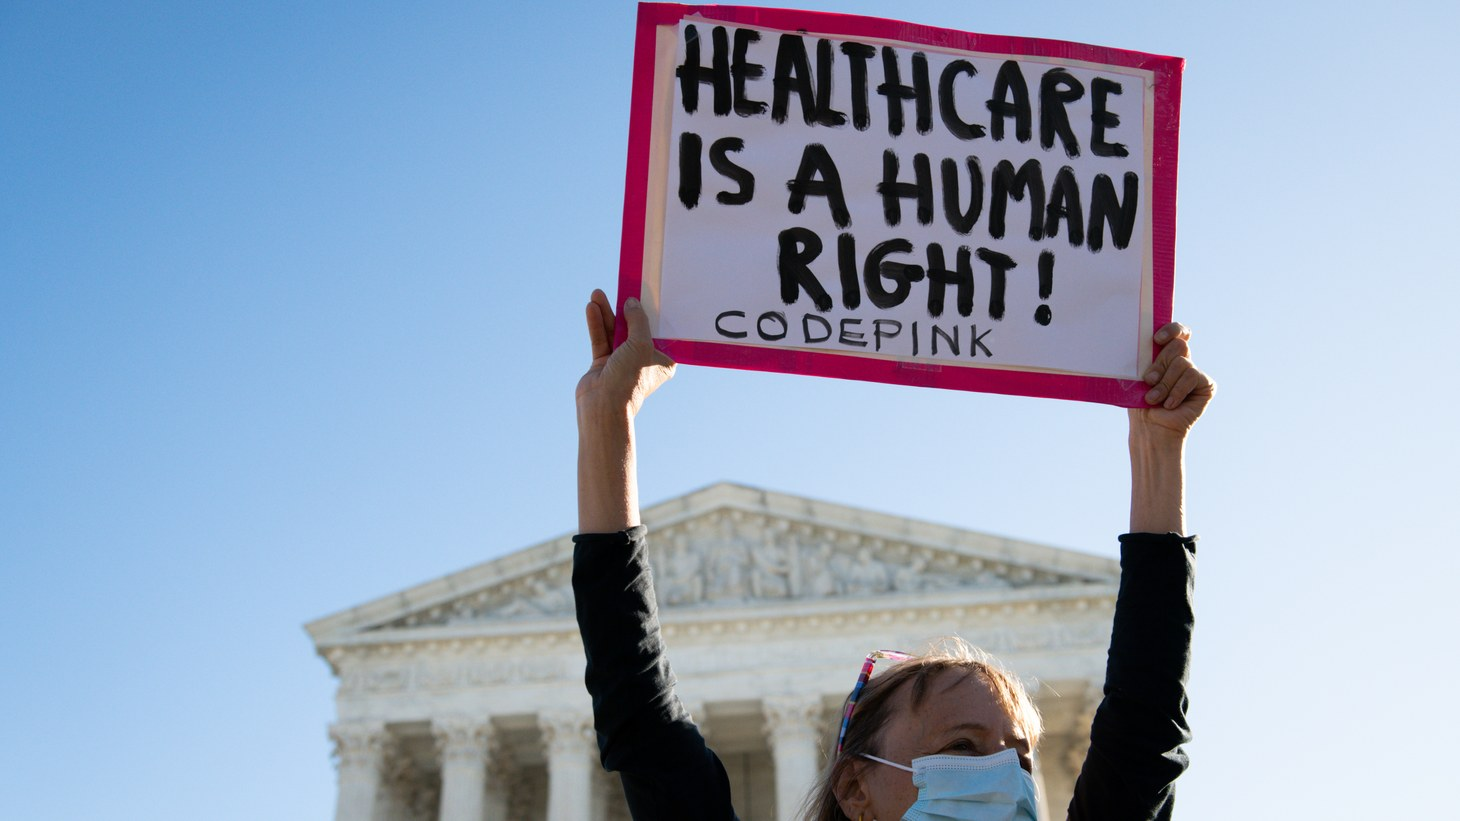 Madea Benjamin, with activist group Code Pink, holds a sign during a protest organized by SPACEs In Action at the U.S. Supreme Court, demanding the court preserve the Affordable Care Act in Washington, D.C., on November 10, 2020, amid the coronavirus pandemic.